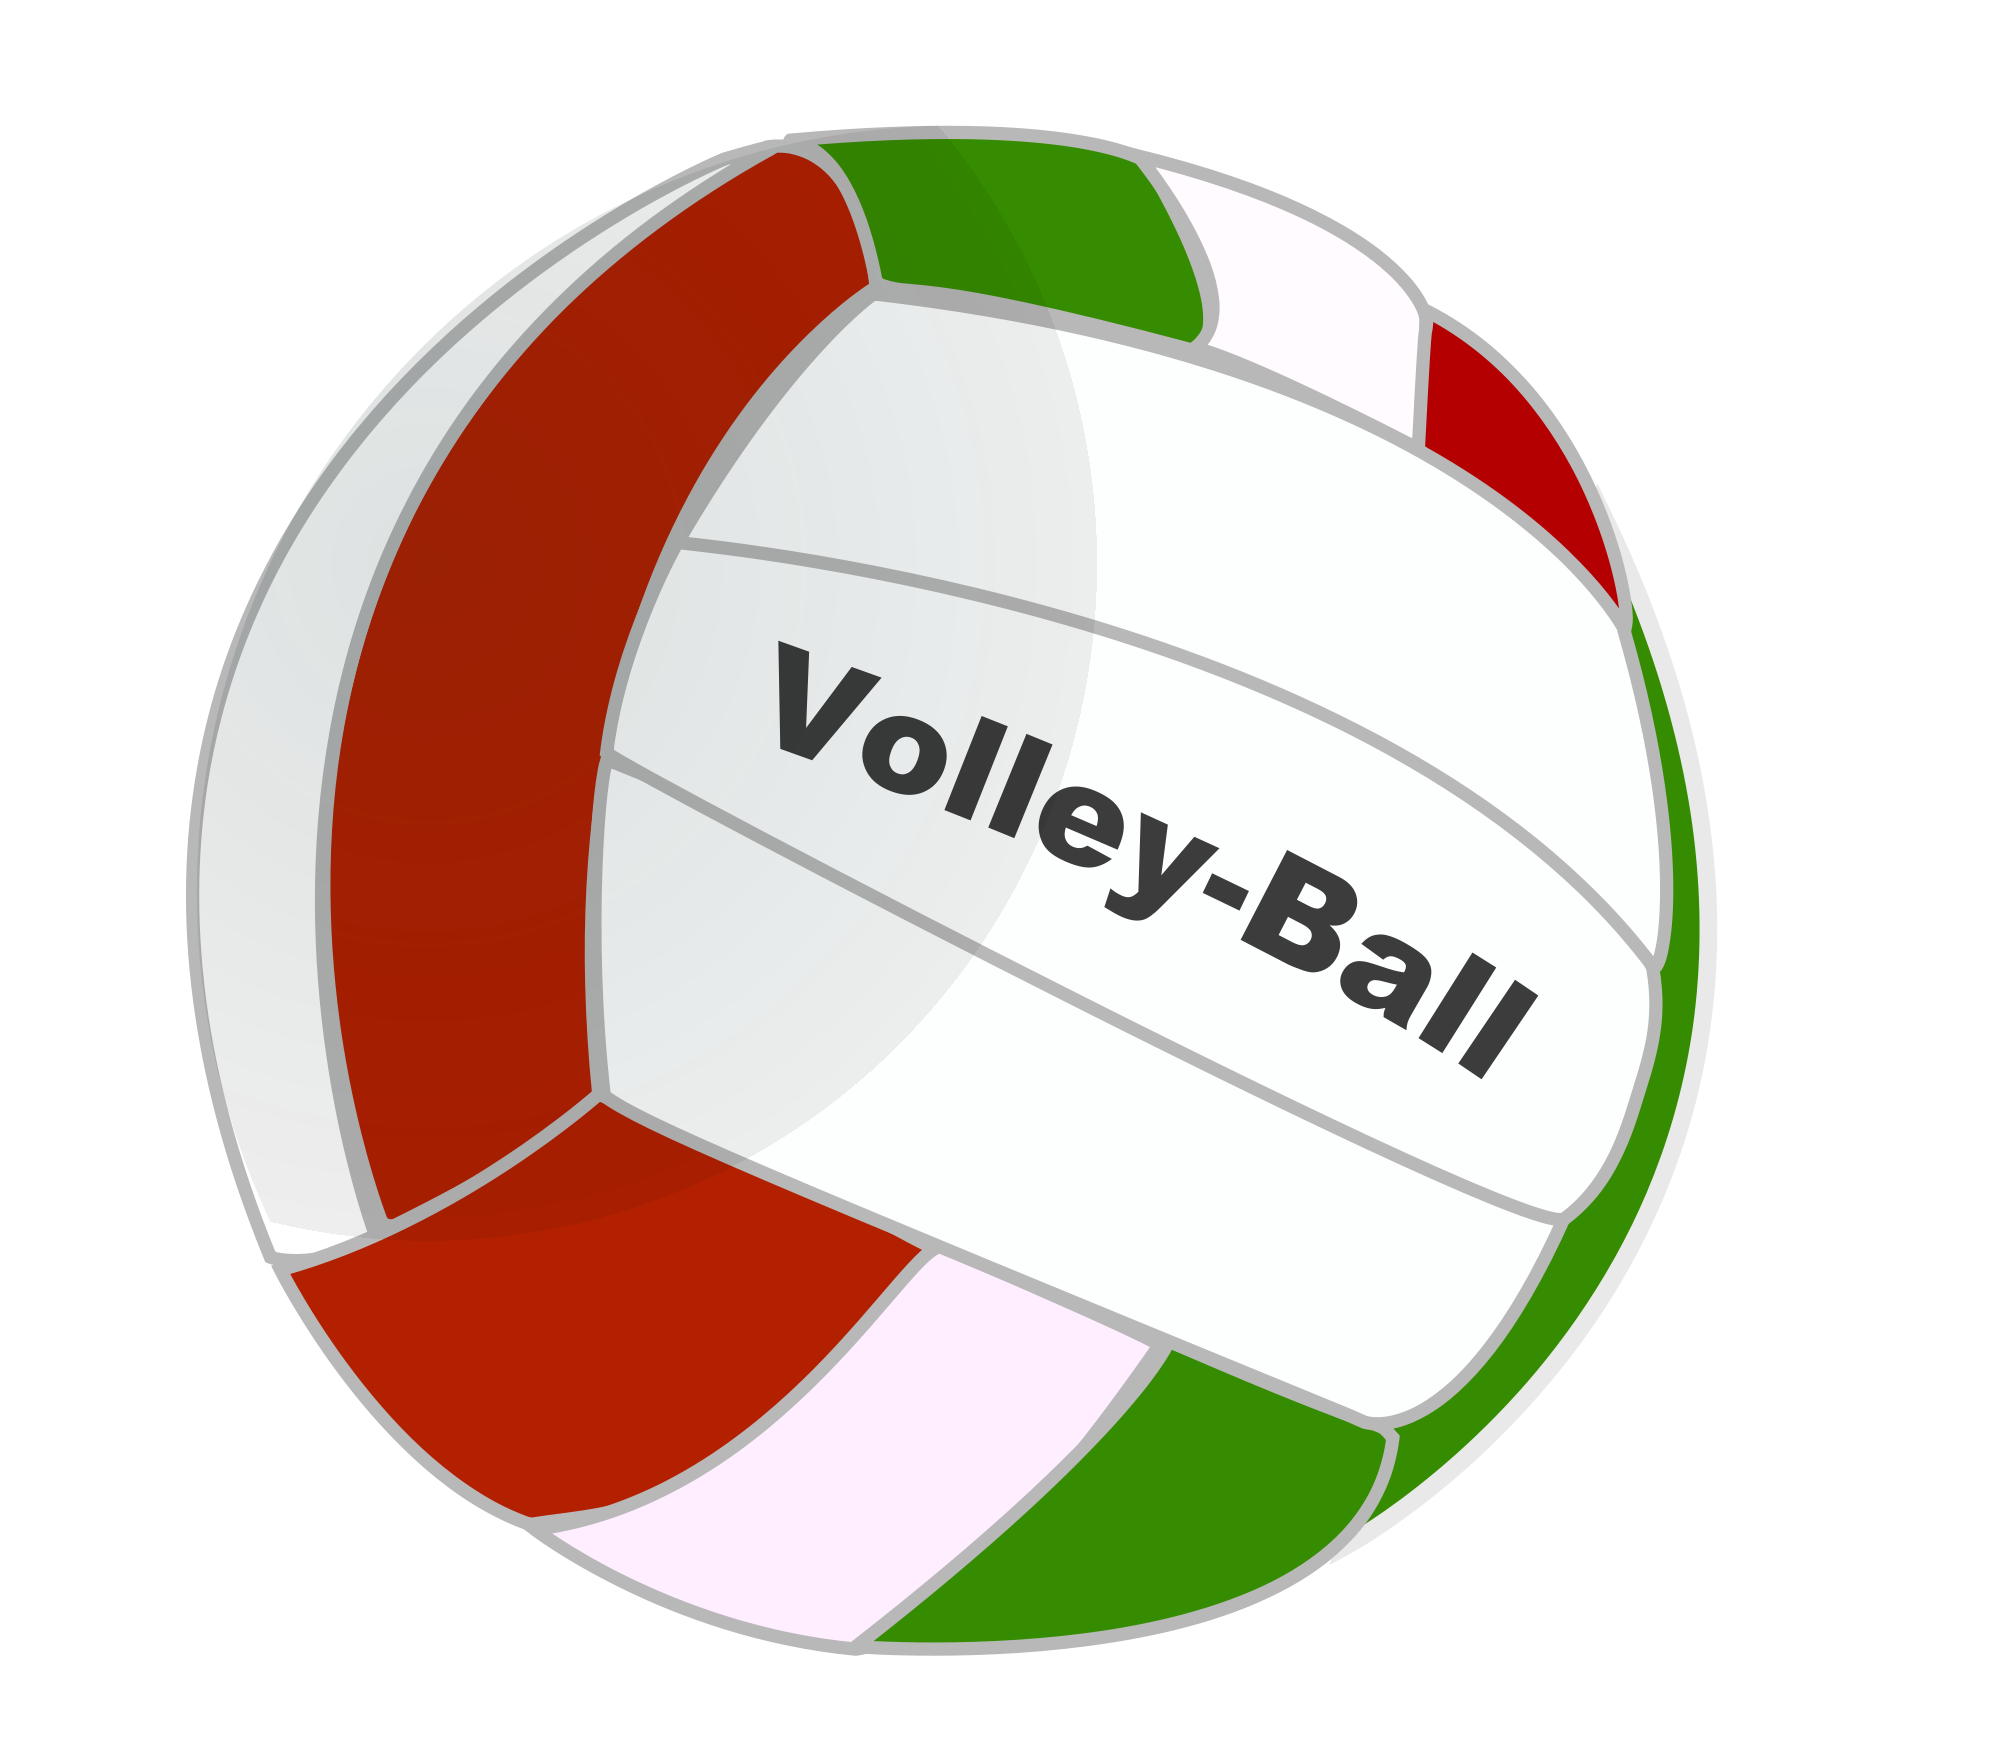 Volleyball clipart border. Volleyballs pictures free download